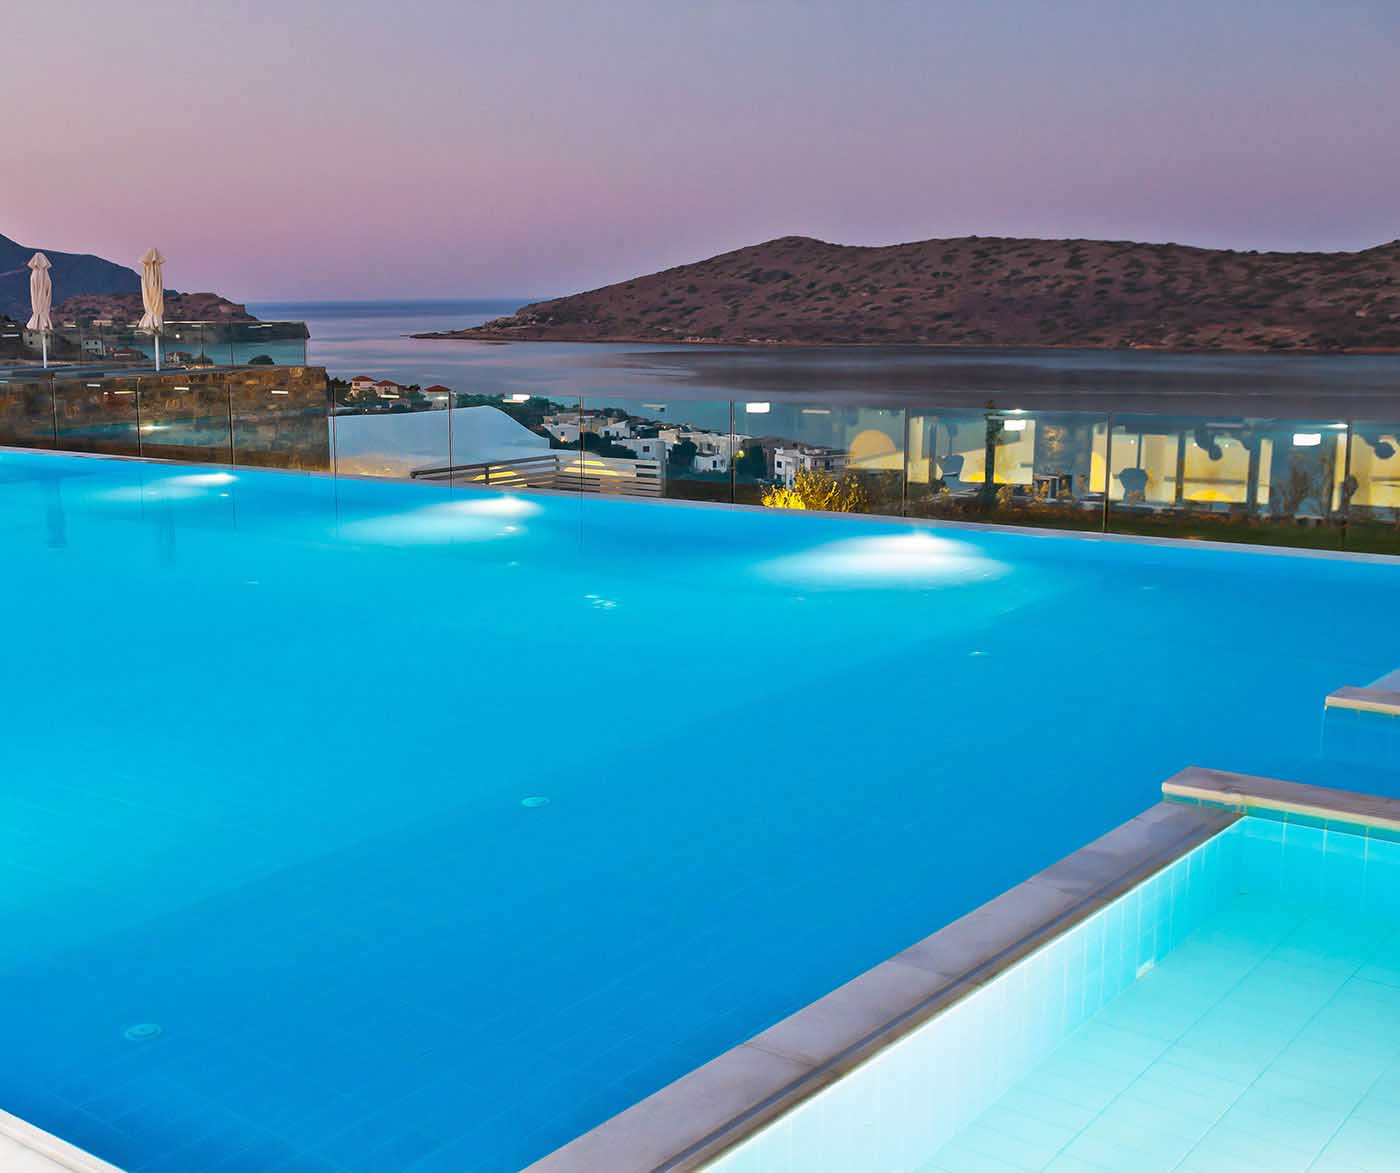 Cyclades Islands hotels & resorts, 50% discount for early bookings, Cyclades Islands, Greece, Europe